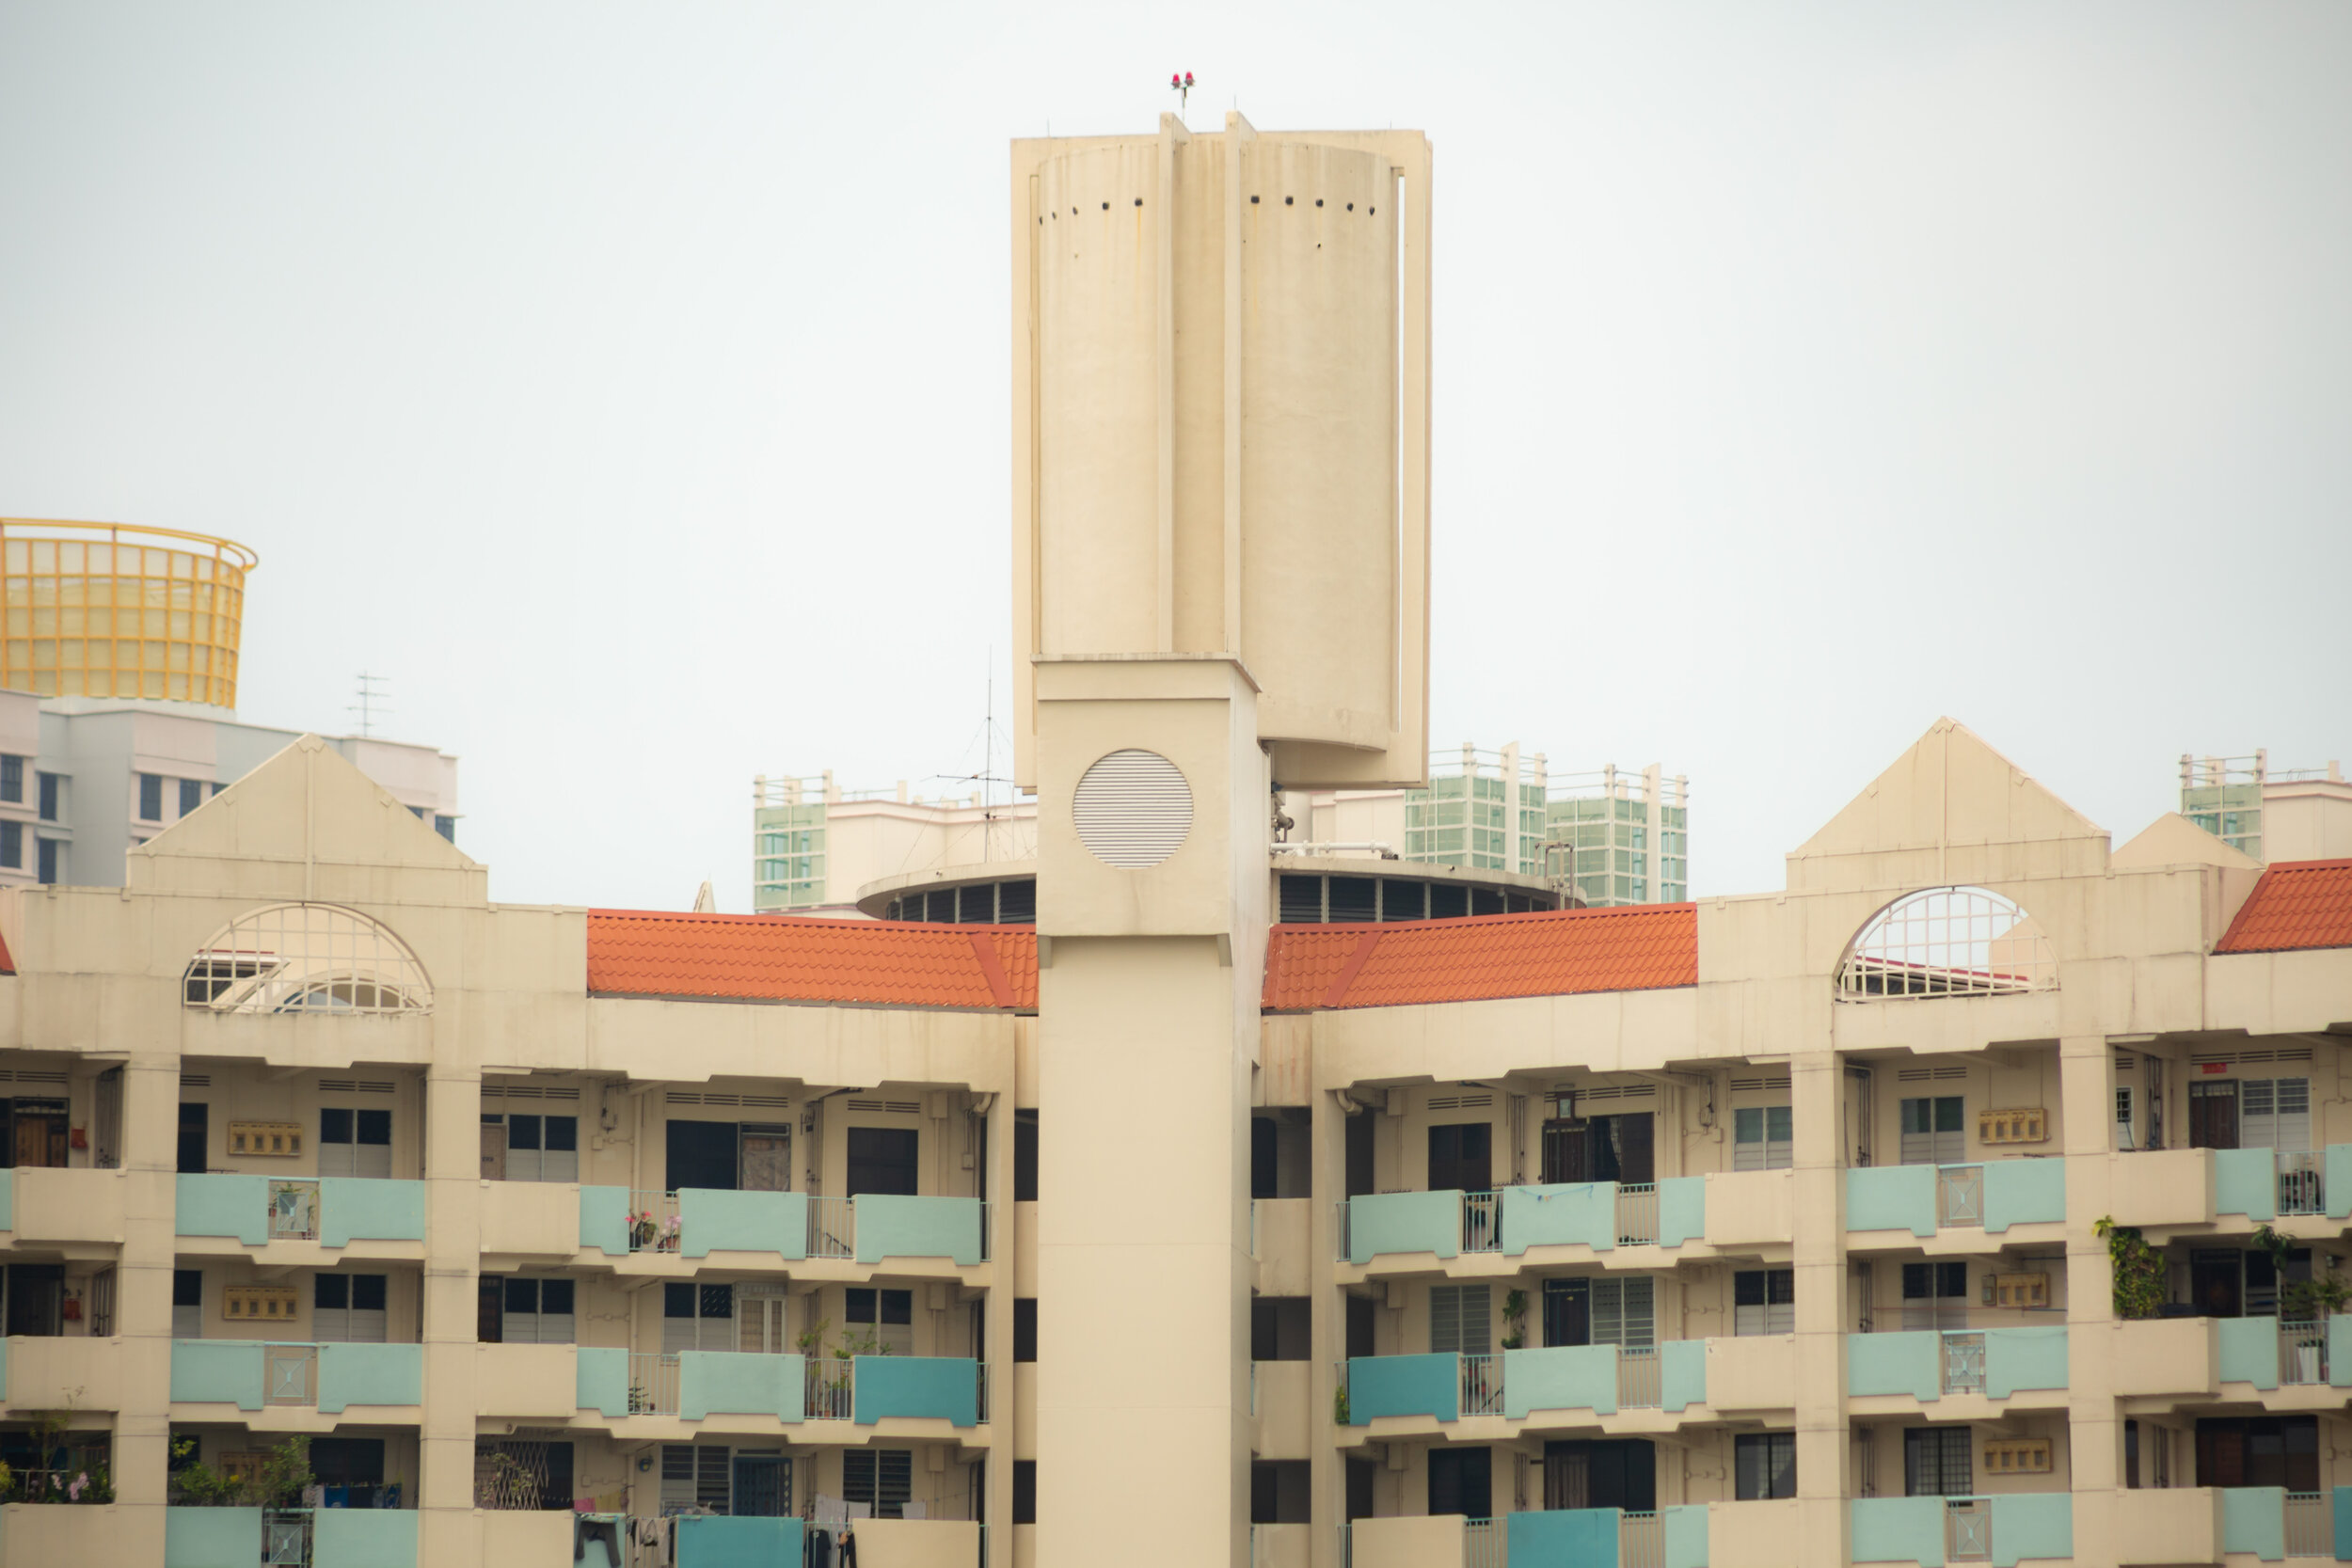 53 Lorong 5 Toa Payoh 190920 090, image by Andrew Campbell Nelson.jpg